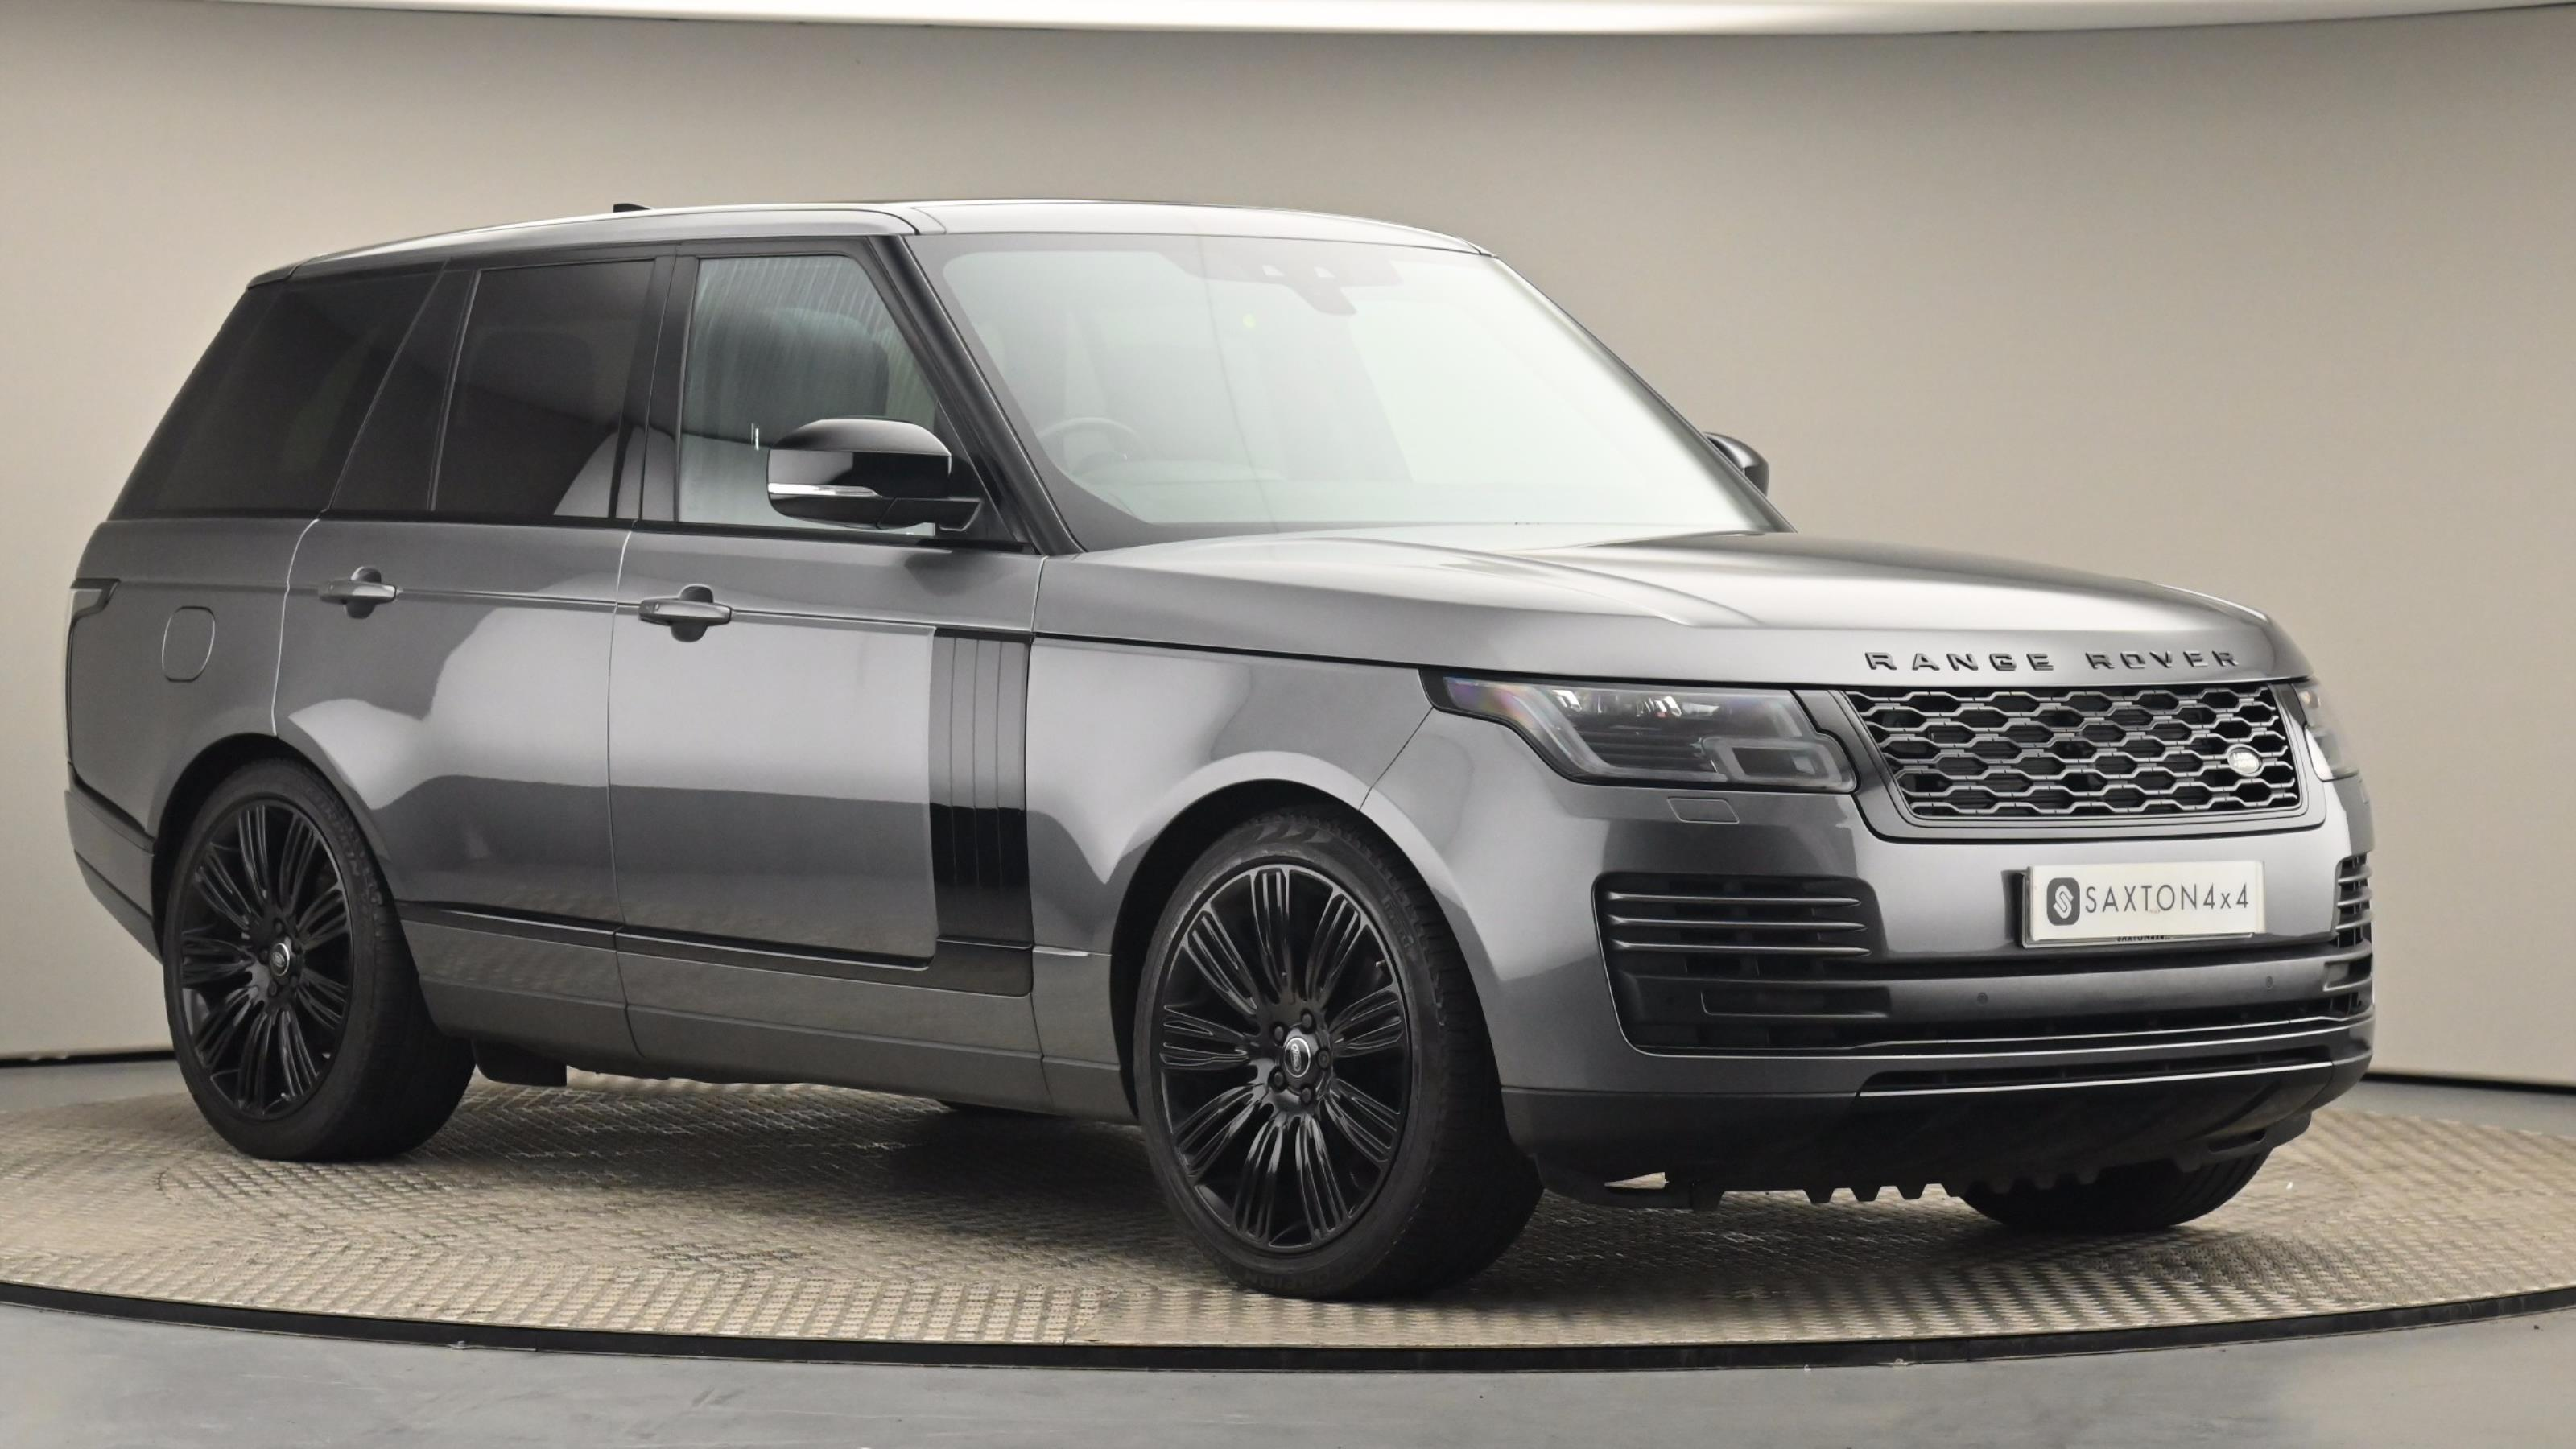 Used 2018 Land Rover RANGE ROVER 3.0 TDV6 Vogue 4dr Auto at Saxton4x4